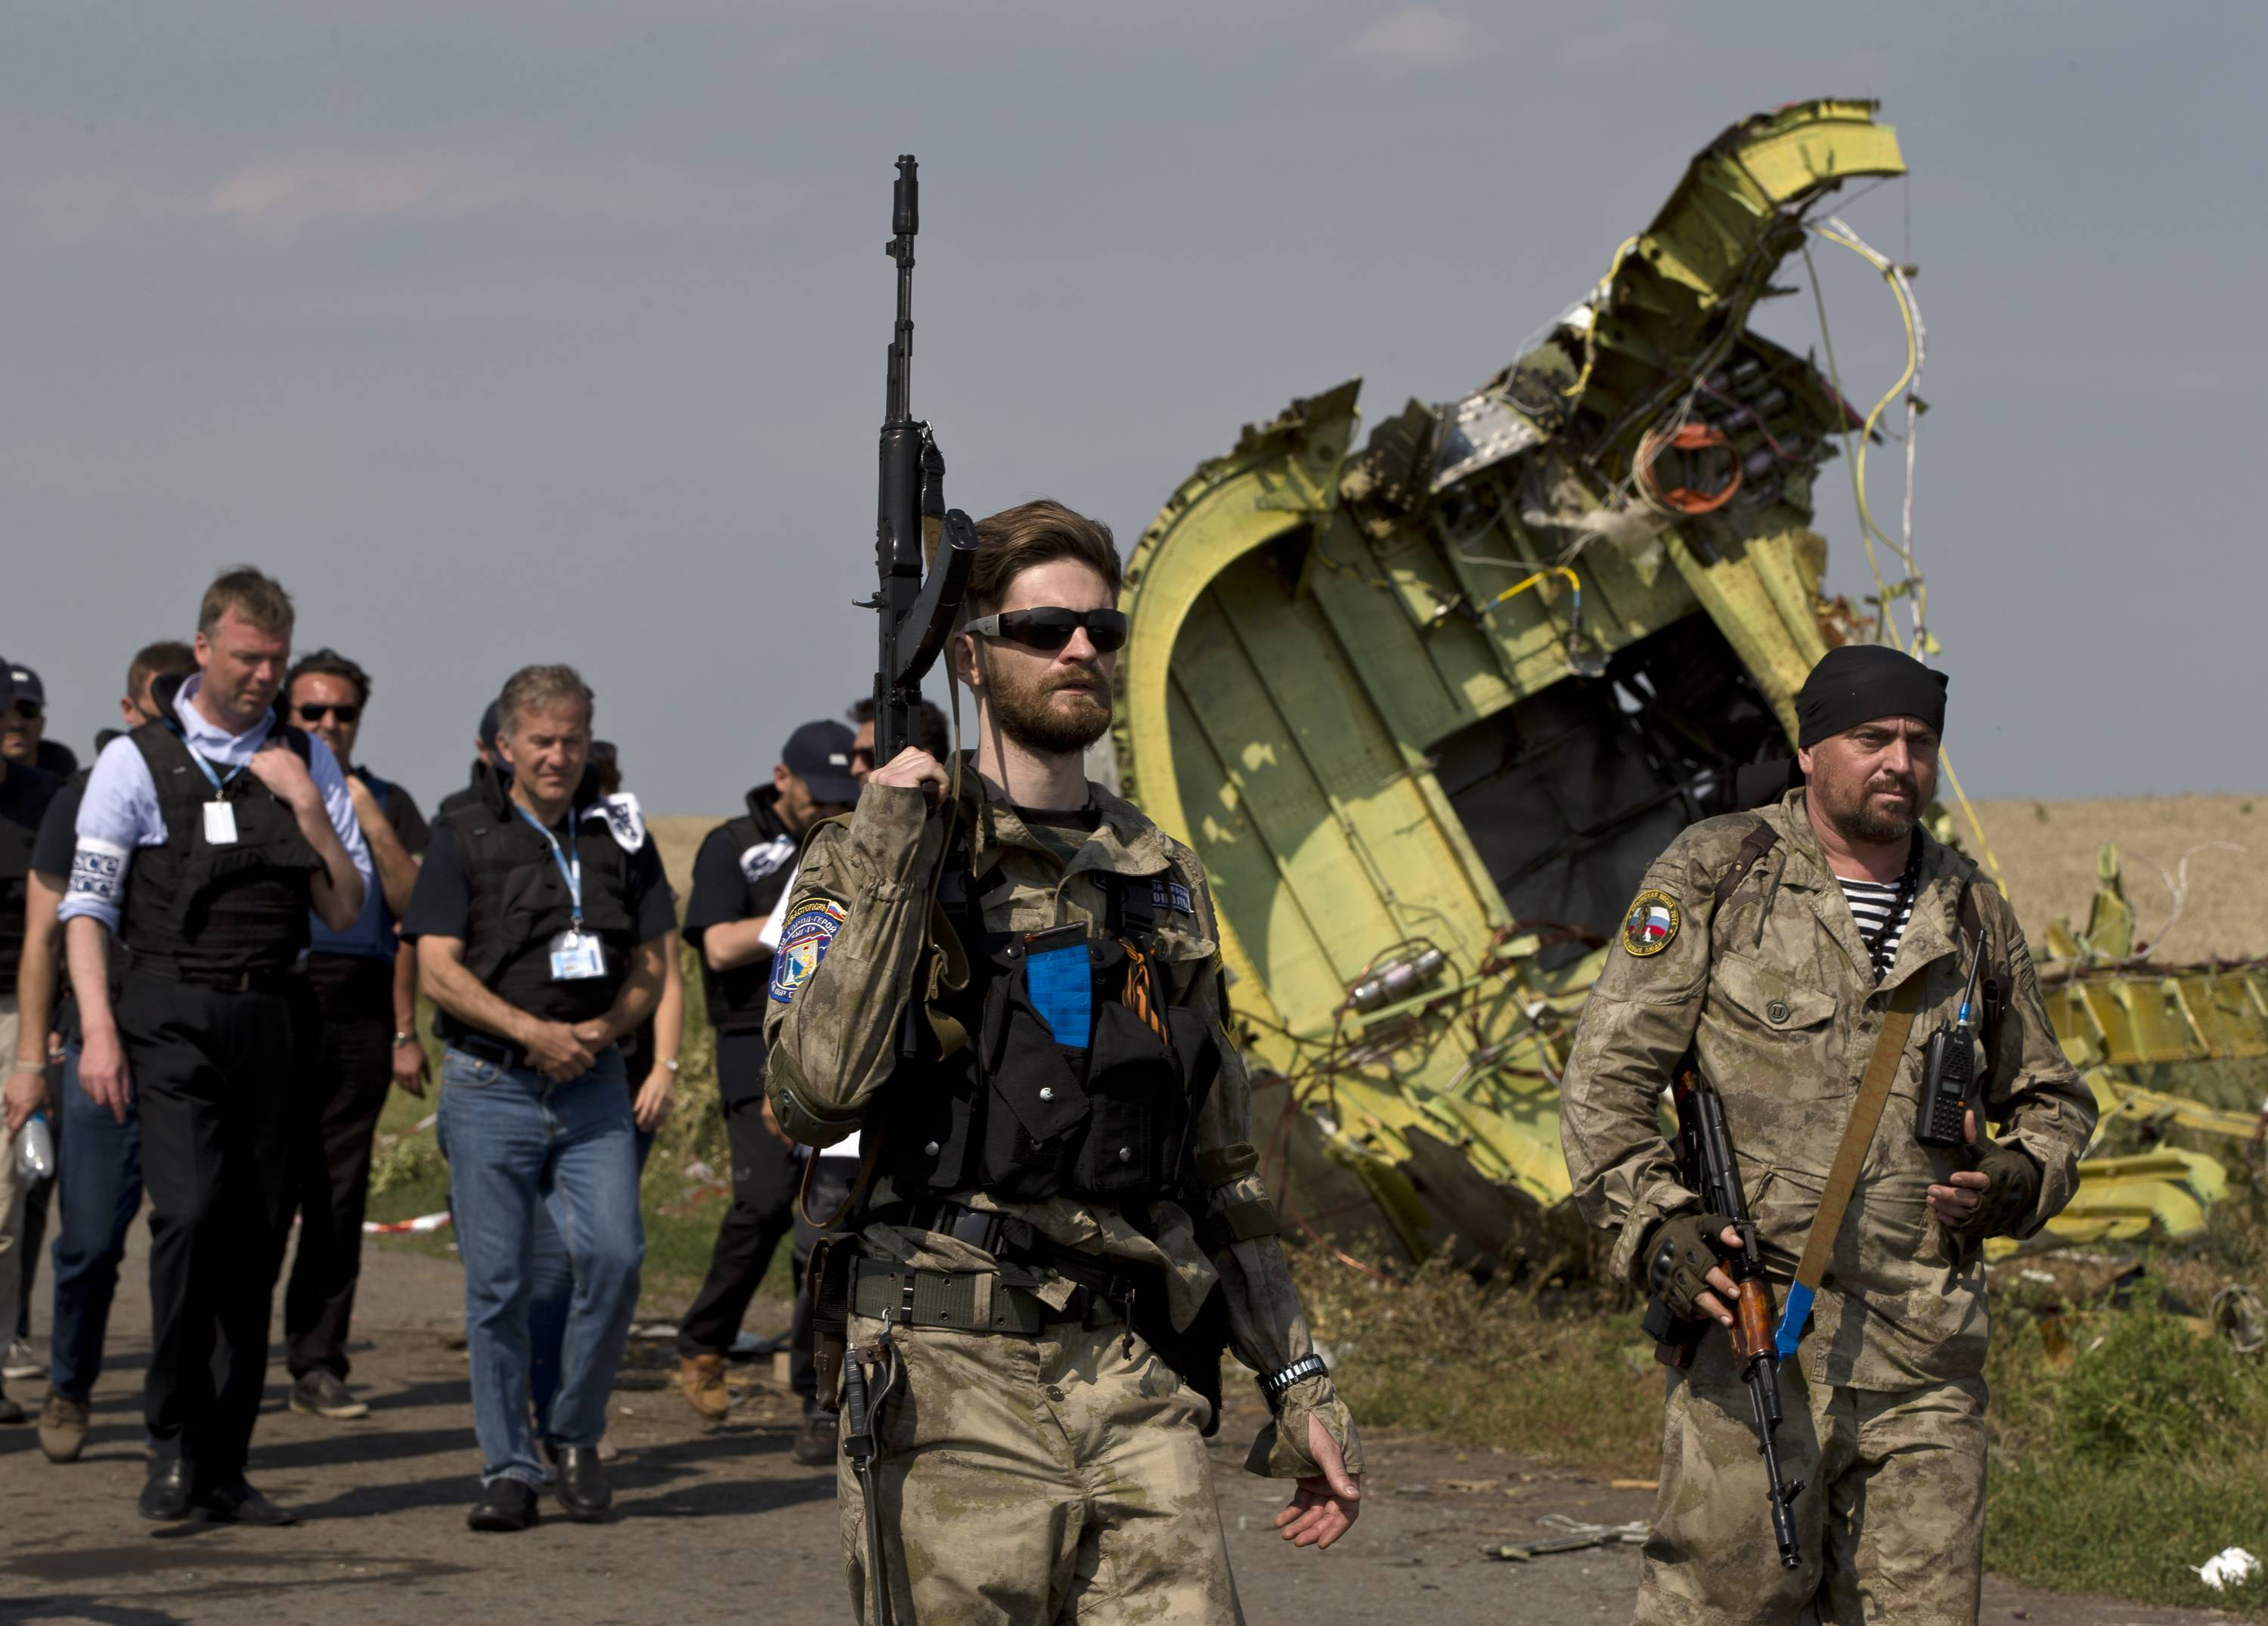 A pro-Russian rebel holds a gun passing by plane wreckage as members of the OSCE mission to Ukraine arrive for a media briefing at the crash site of Malaysia Airlines Flight 17, near the village of Hrabove, eastern Ukraine, Tuesday. A team of Malaysian investigators visited the site along with members of the OSCE mission in Ukraine for the first time since the air crash last week.